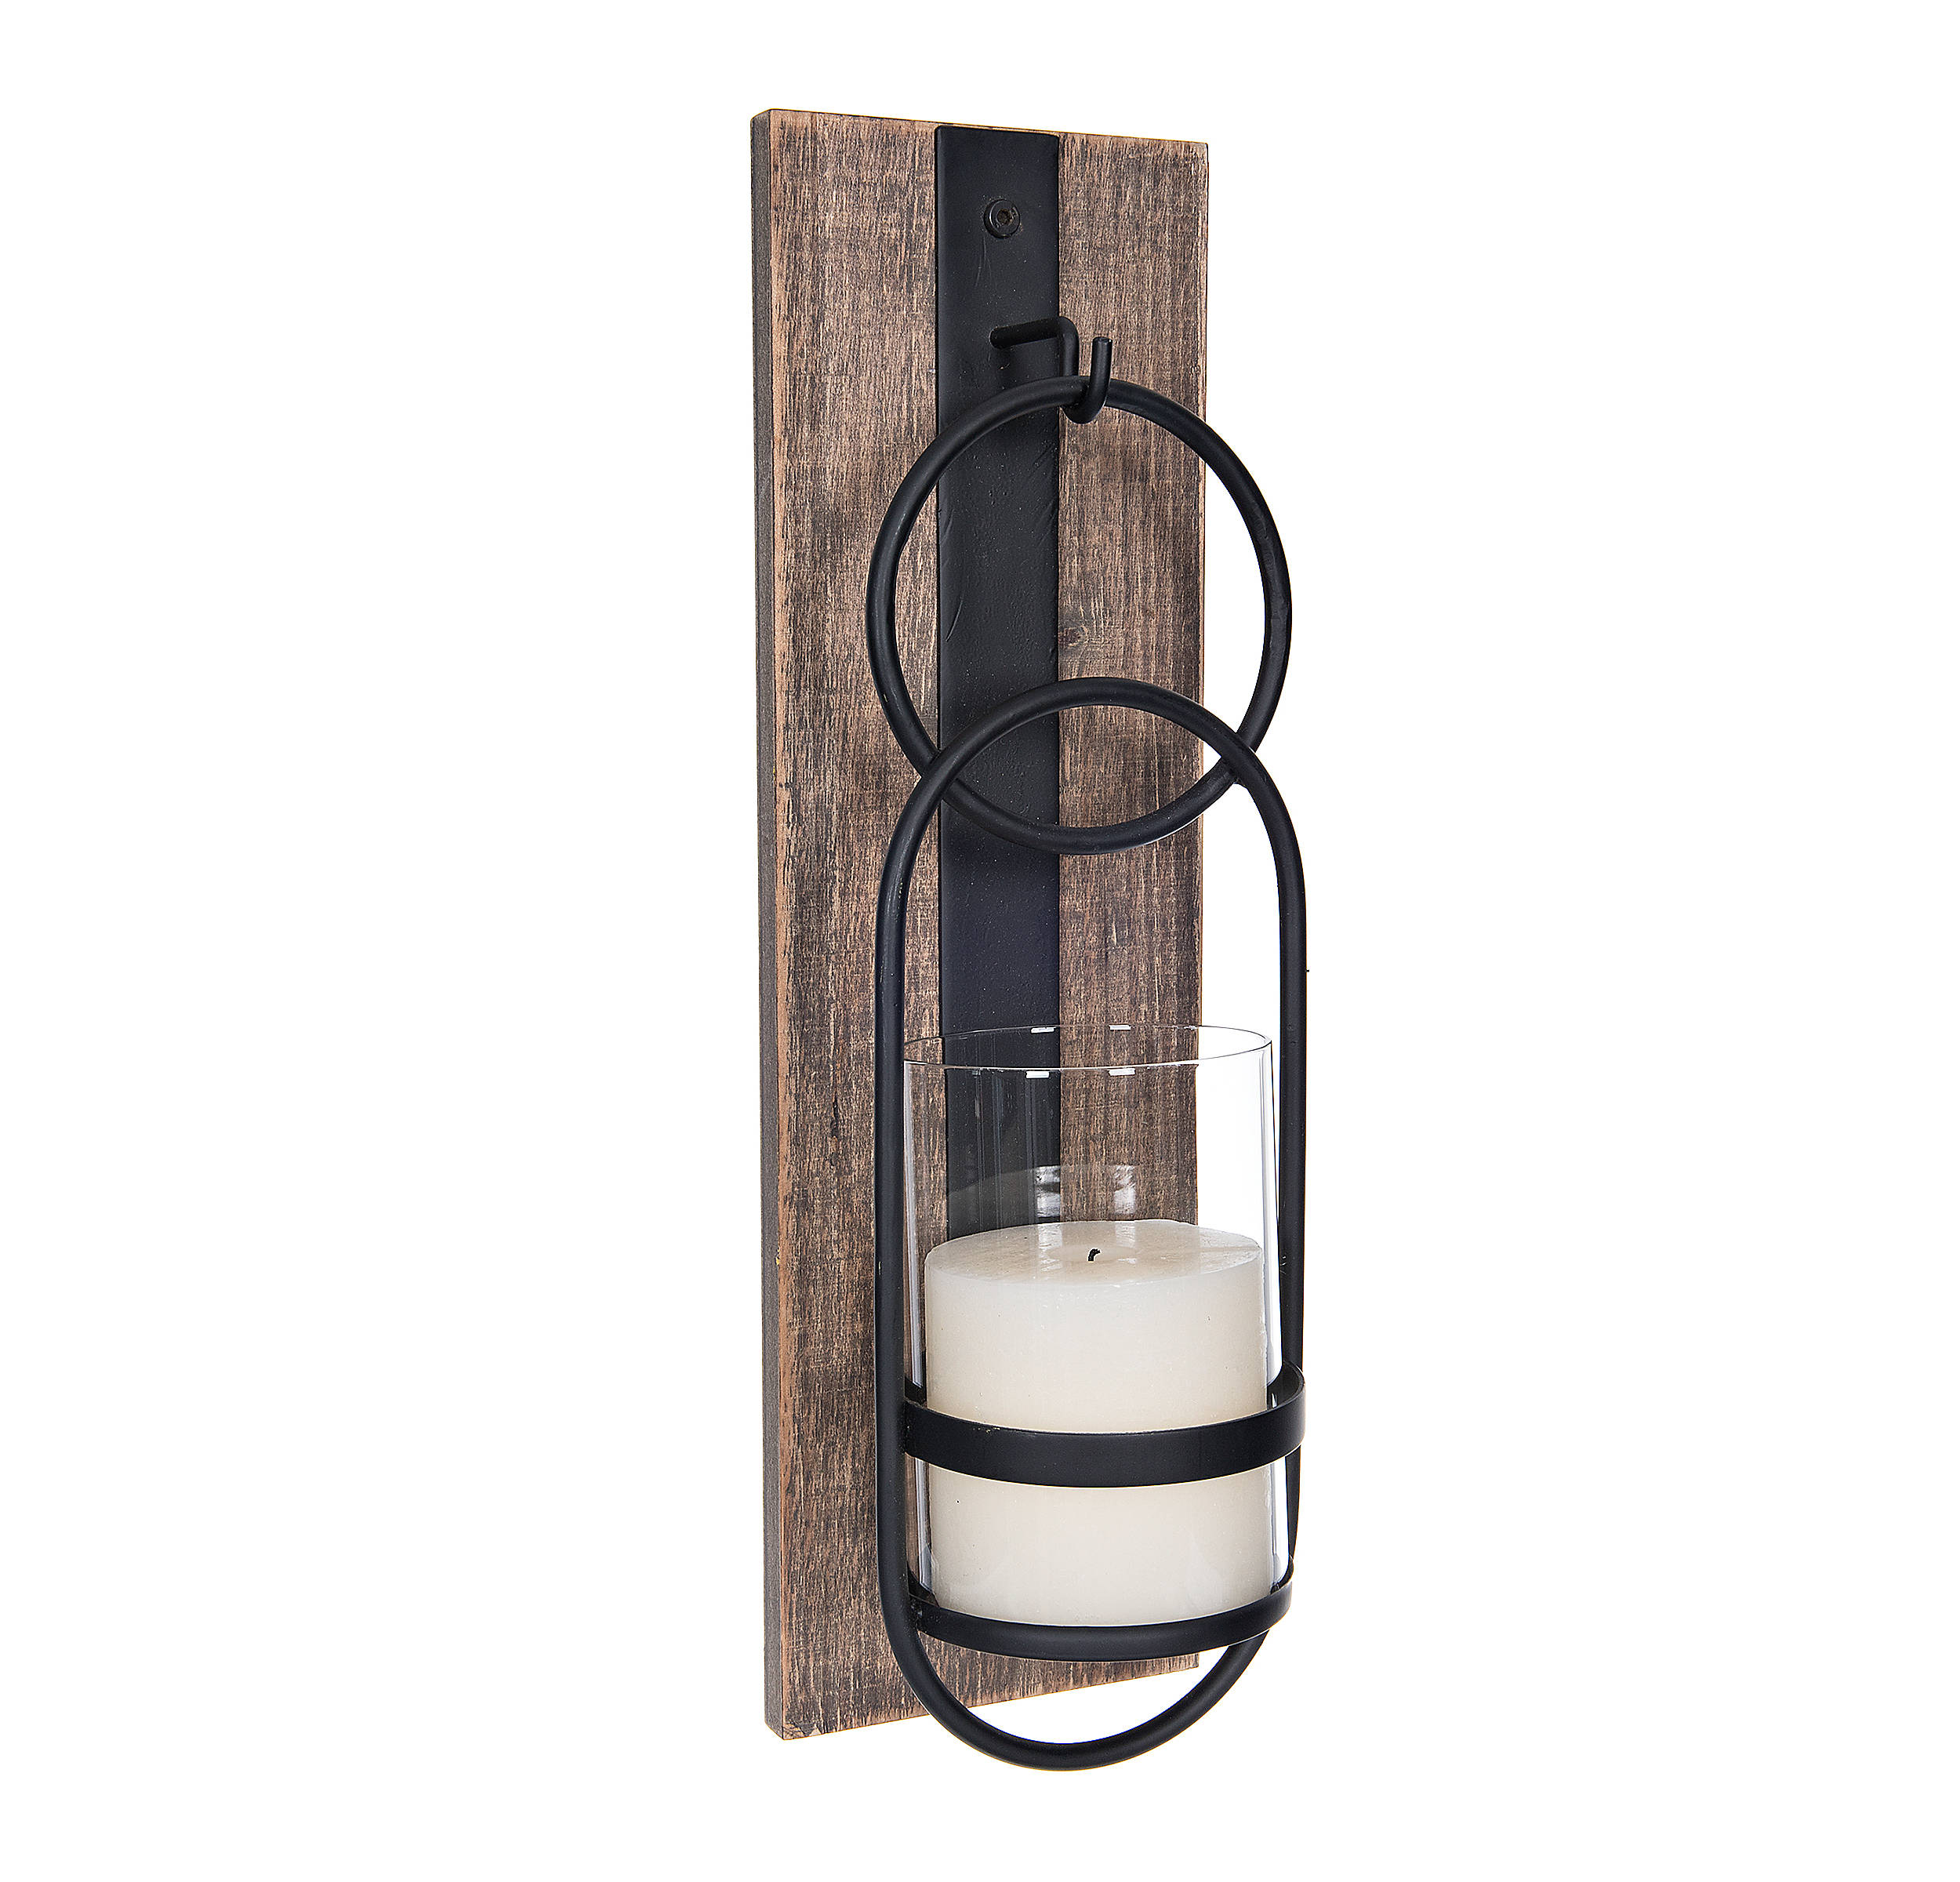 Shop Wood and Black Metal Geometric Sconce from Kirkland's on Openhaus